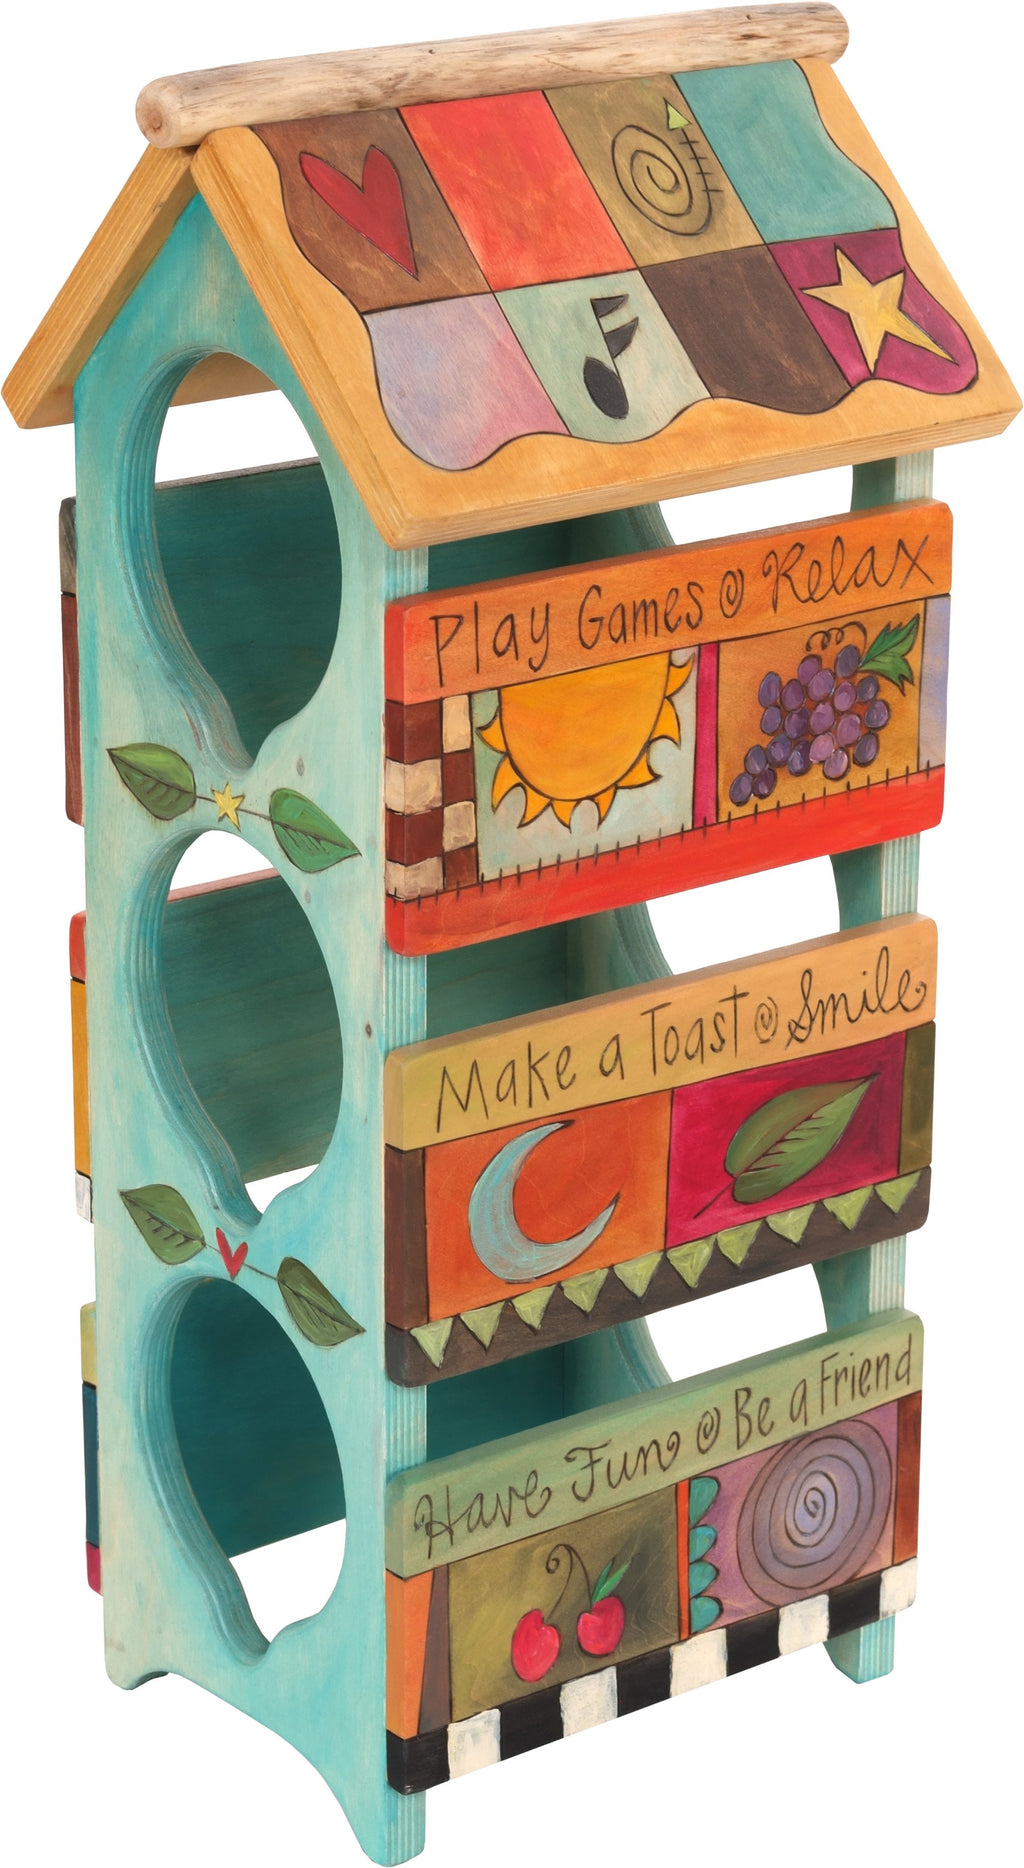 Sticks handmade wine rack with colorful life icons and teal base coat